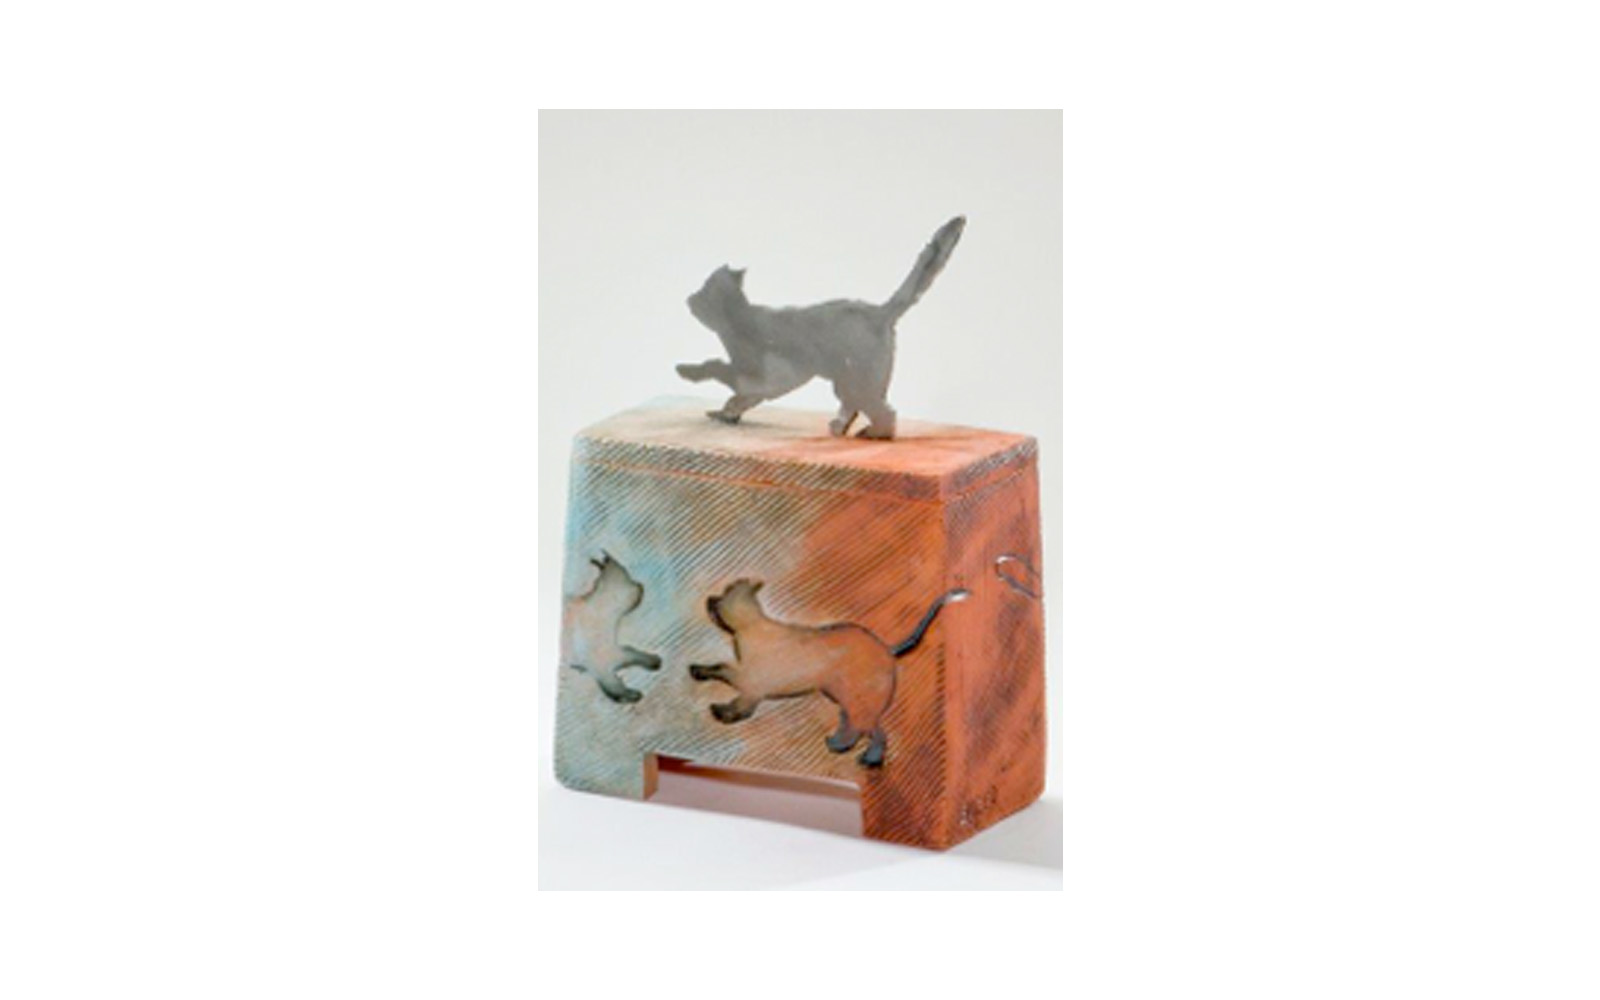 """Kool Kat Ceramic Pet Urn    This ceramic urn is Unique, Vibrant, and shows the Spunkiness of the cat. This urn has a Custom Metal Cat Cut Handle used to Imprint the sides of the urn. This urn measures 5 ¾"""" L x 2 ¾"""" W x 8 ¼"""" H, 35 Cu. Inches, up to 35 lbs. $365    *Please Note: Each piece is uniquely made by its Artist resulting in different colors and weight"""